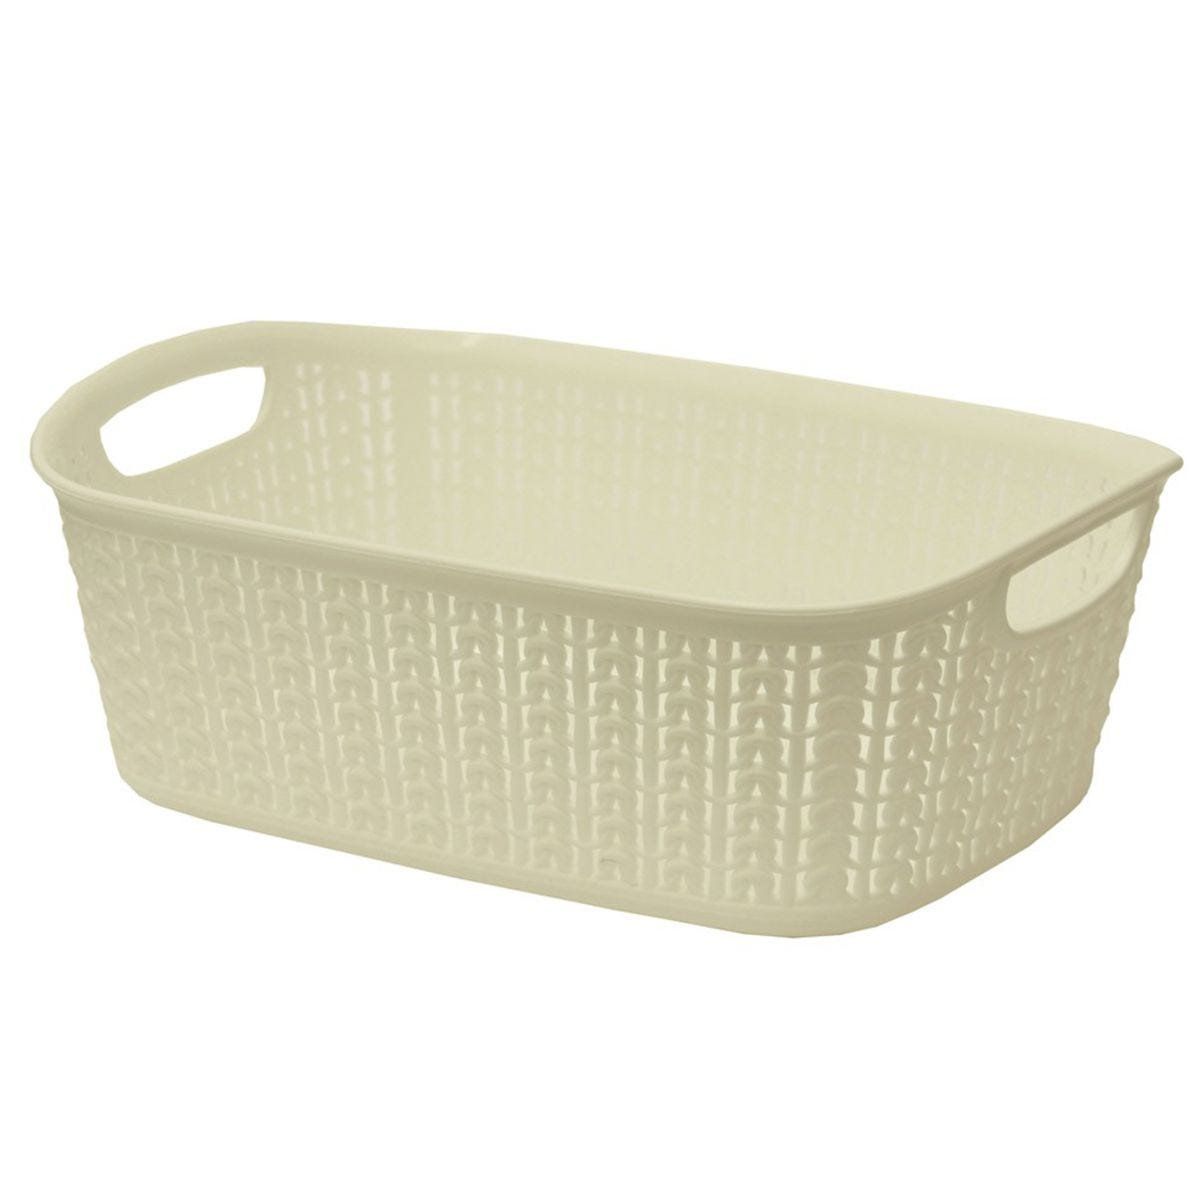 JVL Knit Design Loop Plastic Rectangular Small Storage Basket with Handles Ivory 20 x 26 x 17 cm 6.6 Litres